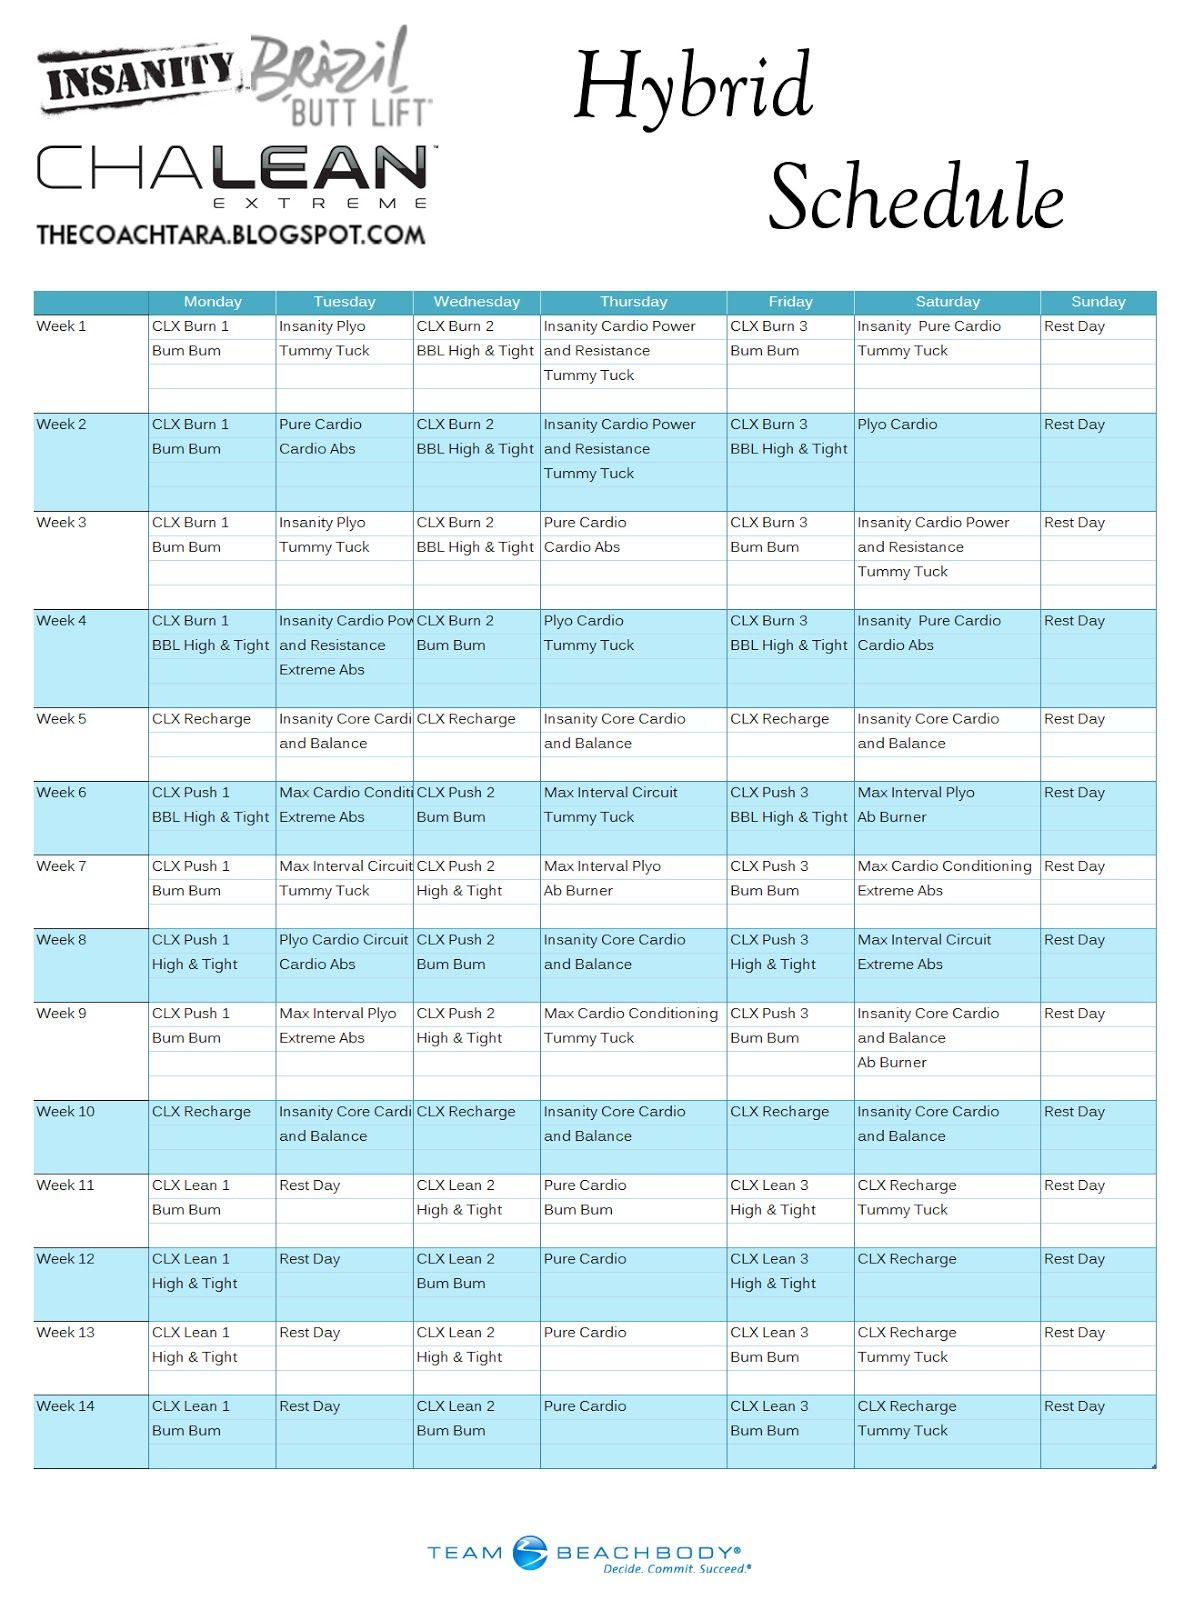 Worksheets Chalean Extreme Worksheets insanity chalean extreme brazil butt lift hybrid schedule free printable calendar journey to